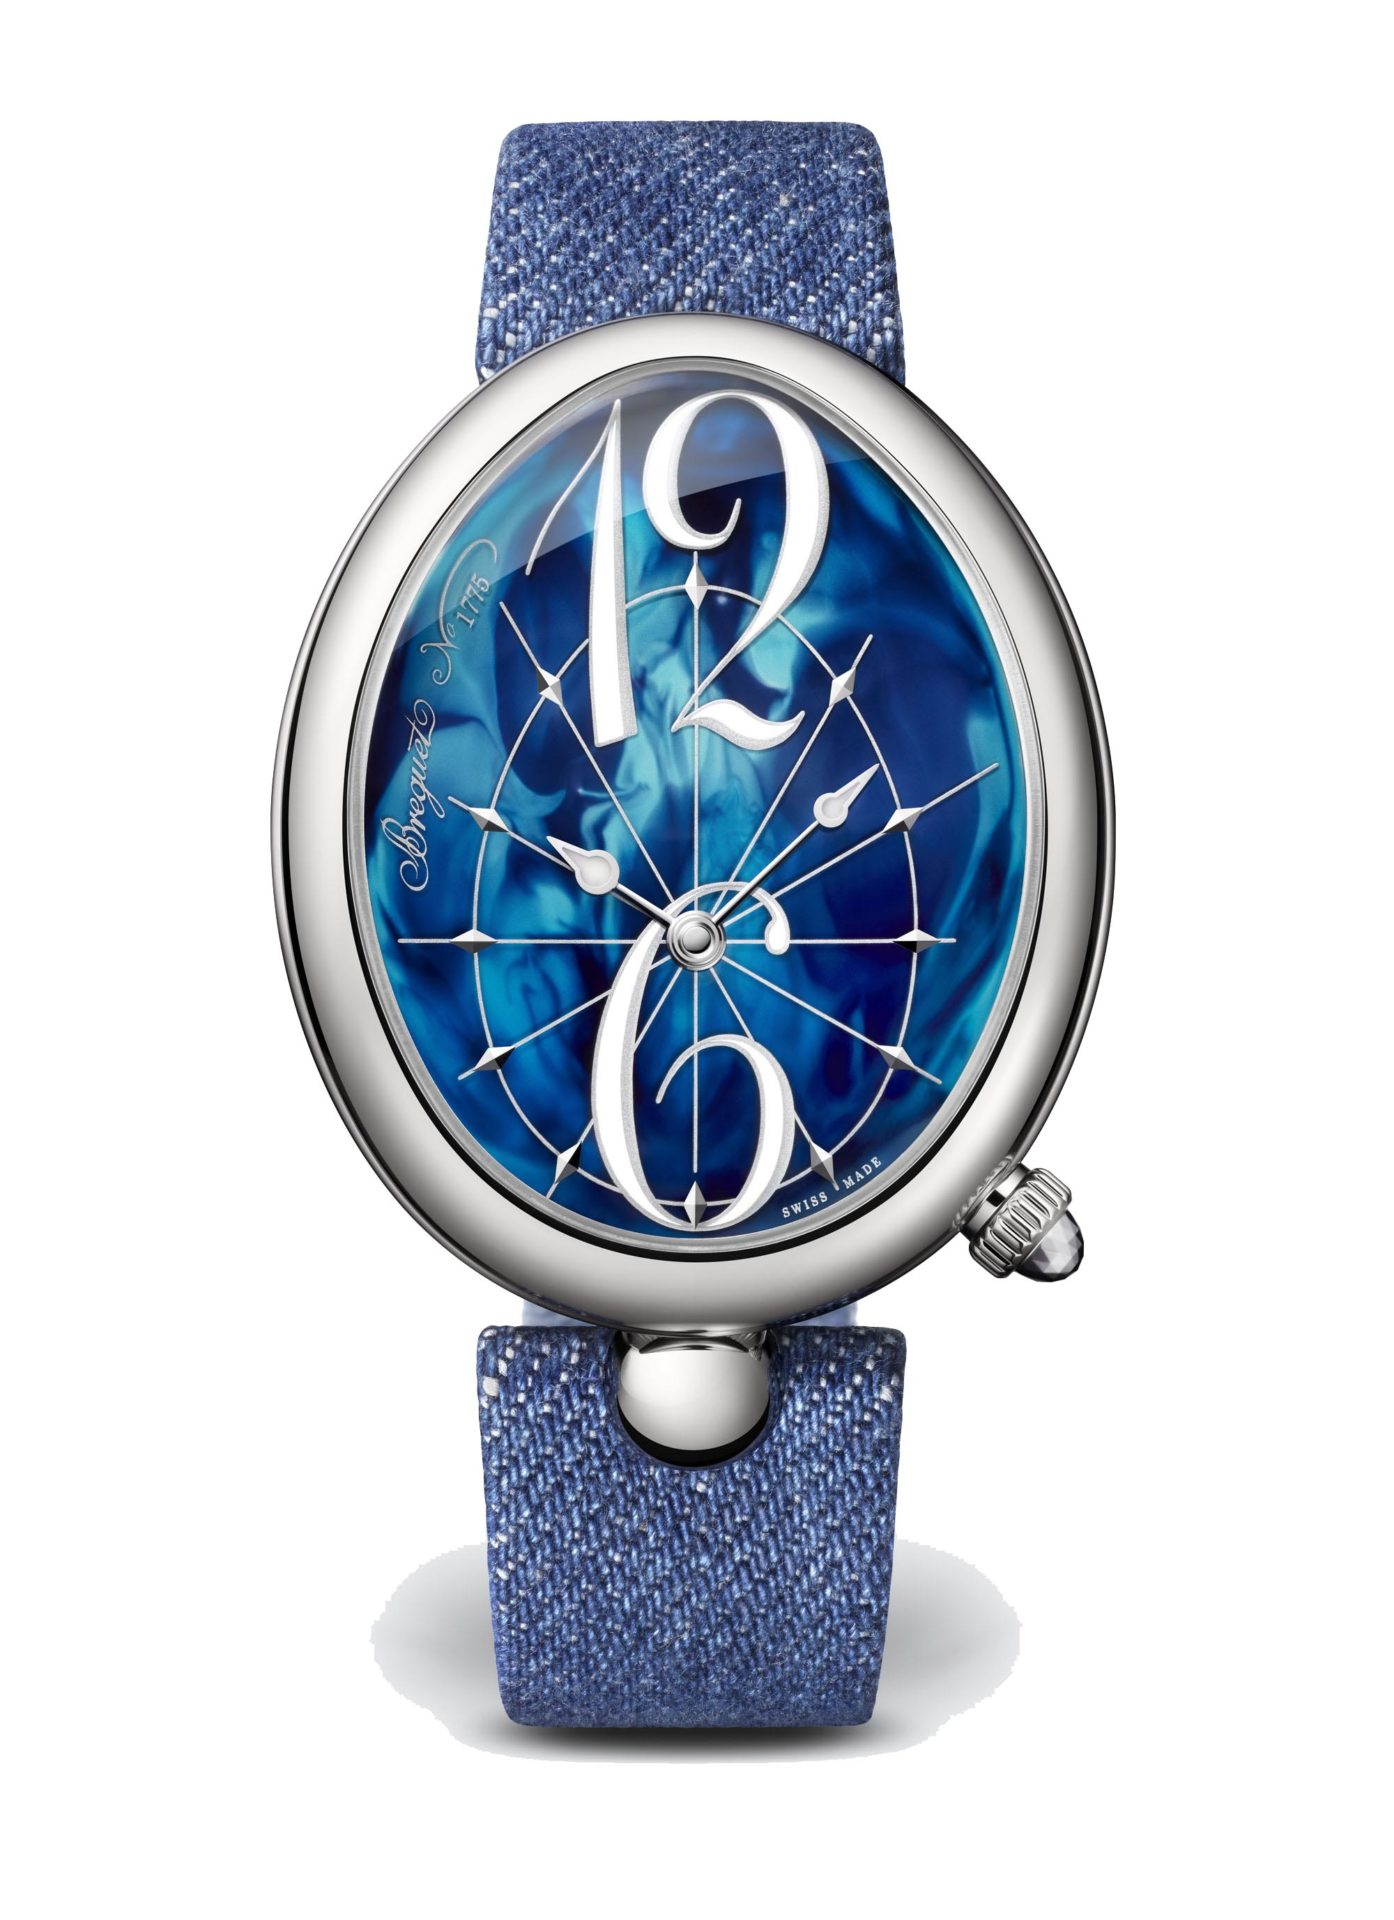 Breguet-Reine-de-Naples-8967-Hall-of-Time-8967ST-E8-786